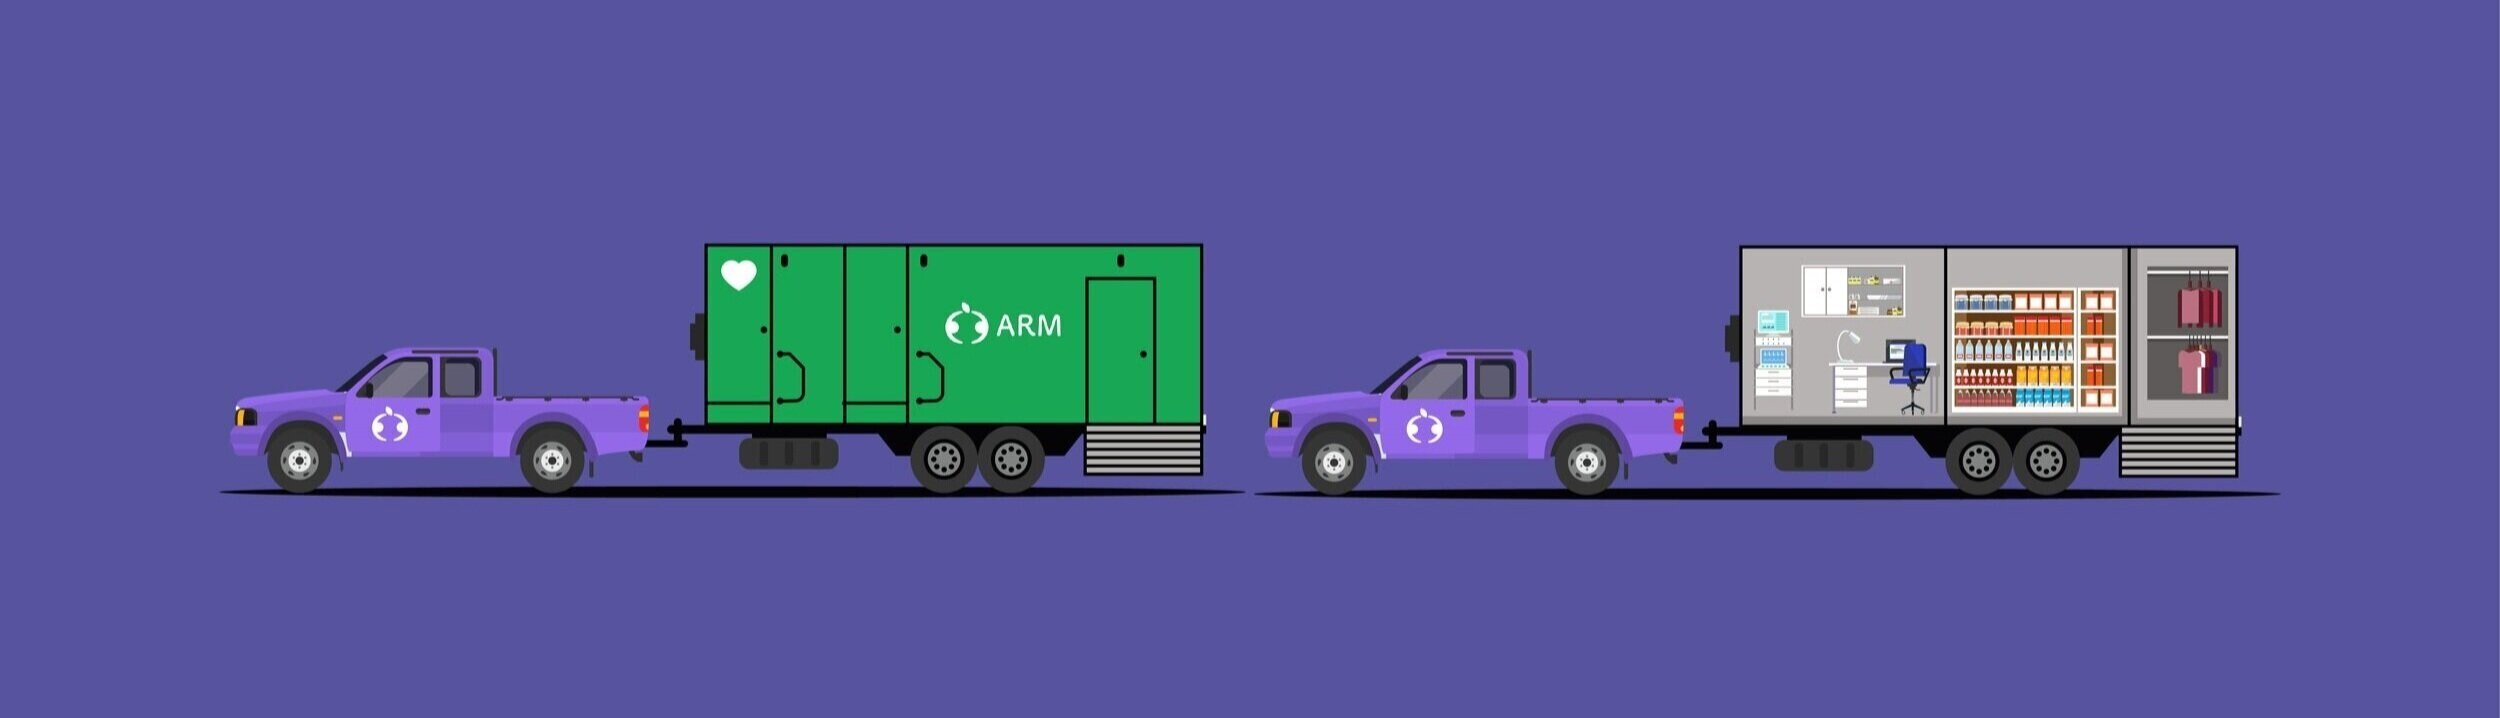 Mobile Assistance Unit - ARM's first installment in our mobile fleet